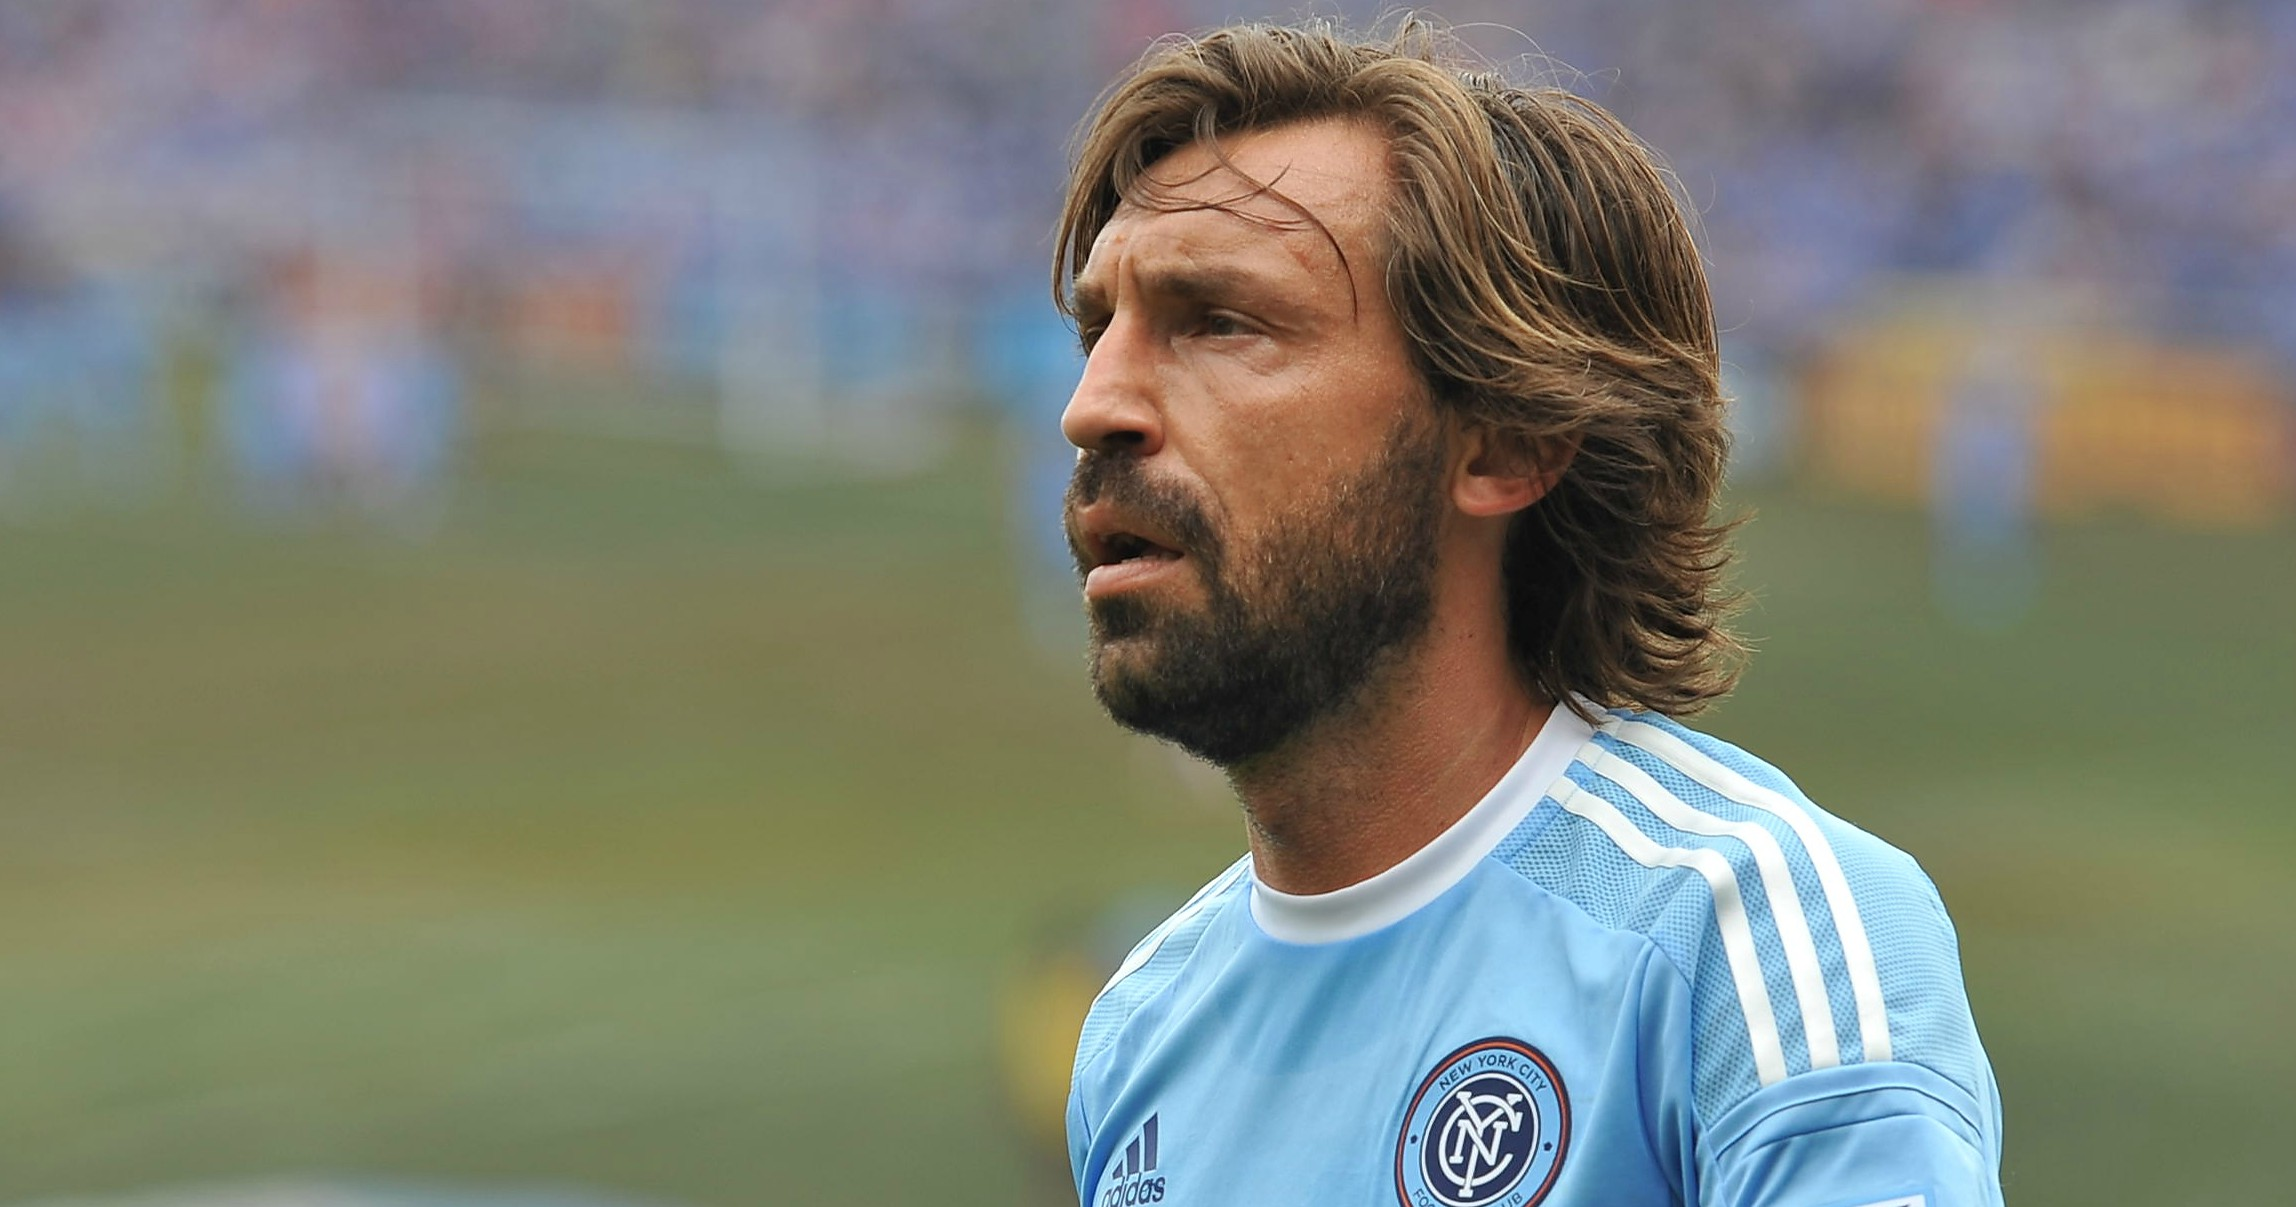 Pirlo plays his last professional pin point pass Football365